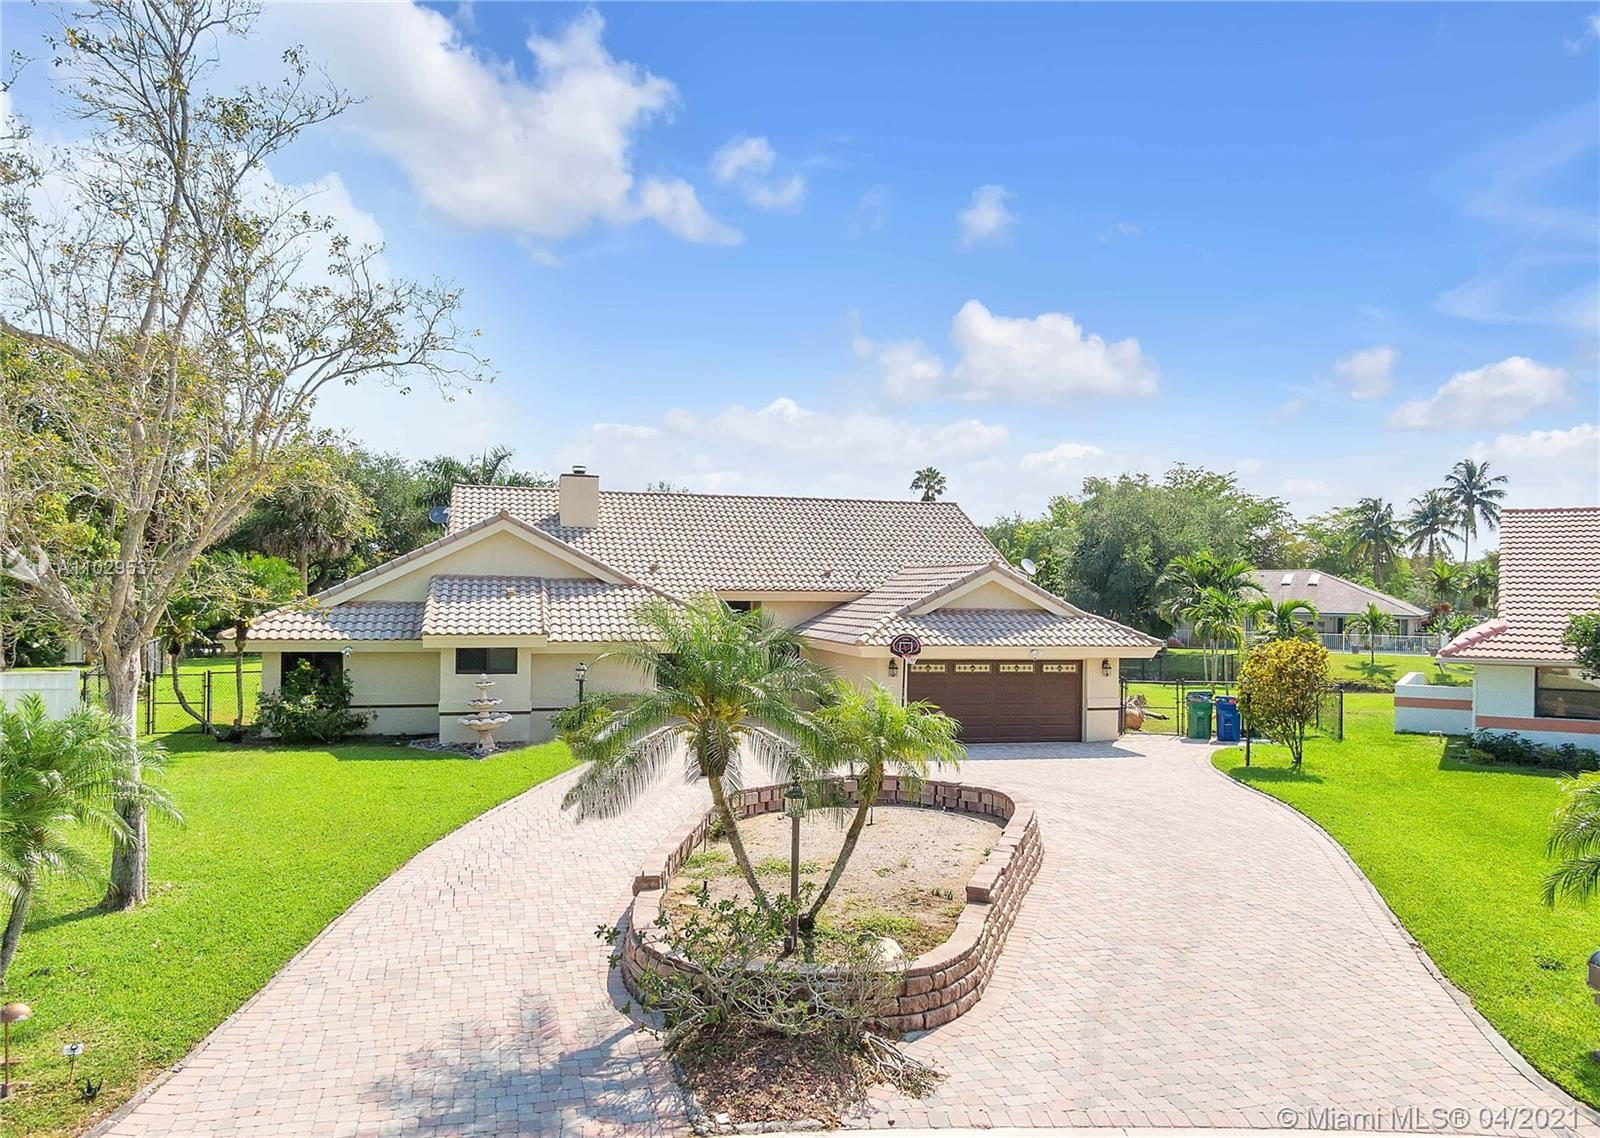 5505 NW 86th Ter, Coral Springs, FL 33067 - #: A11029537